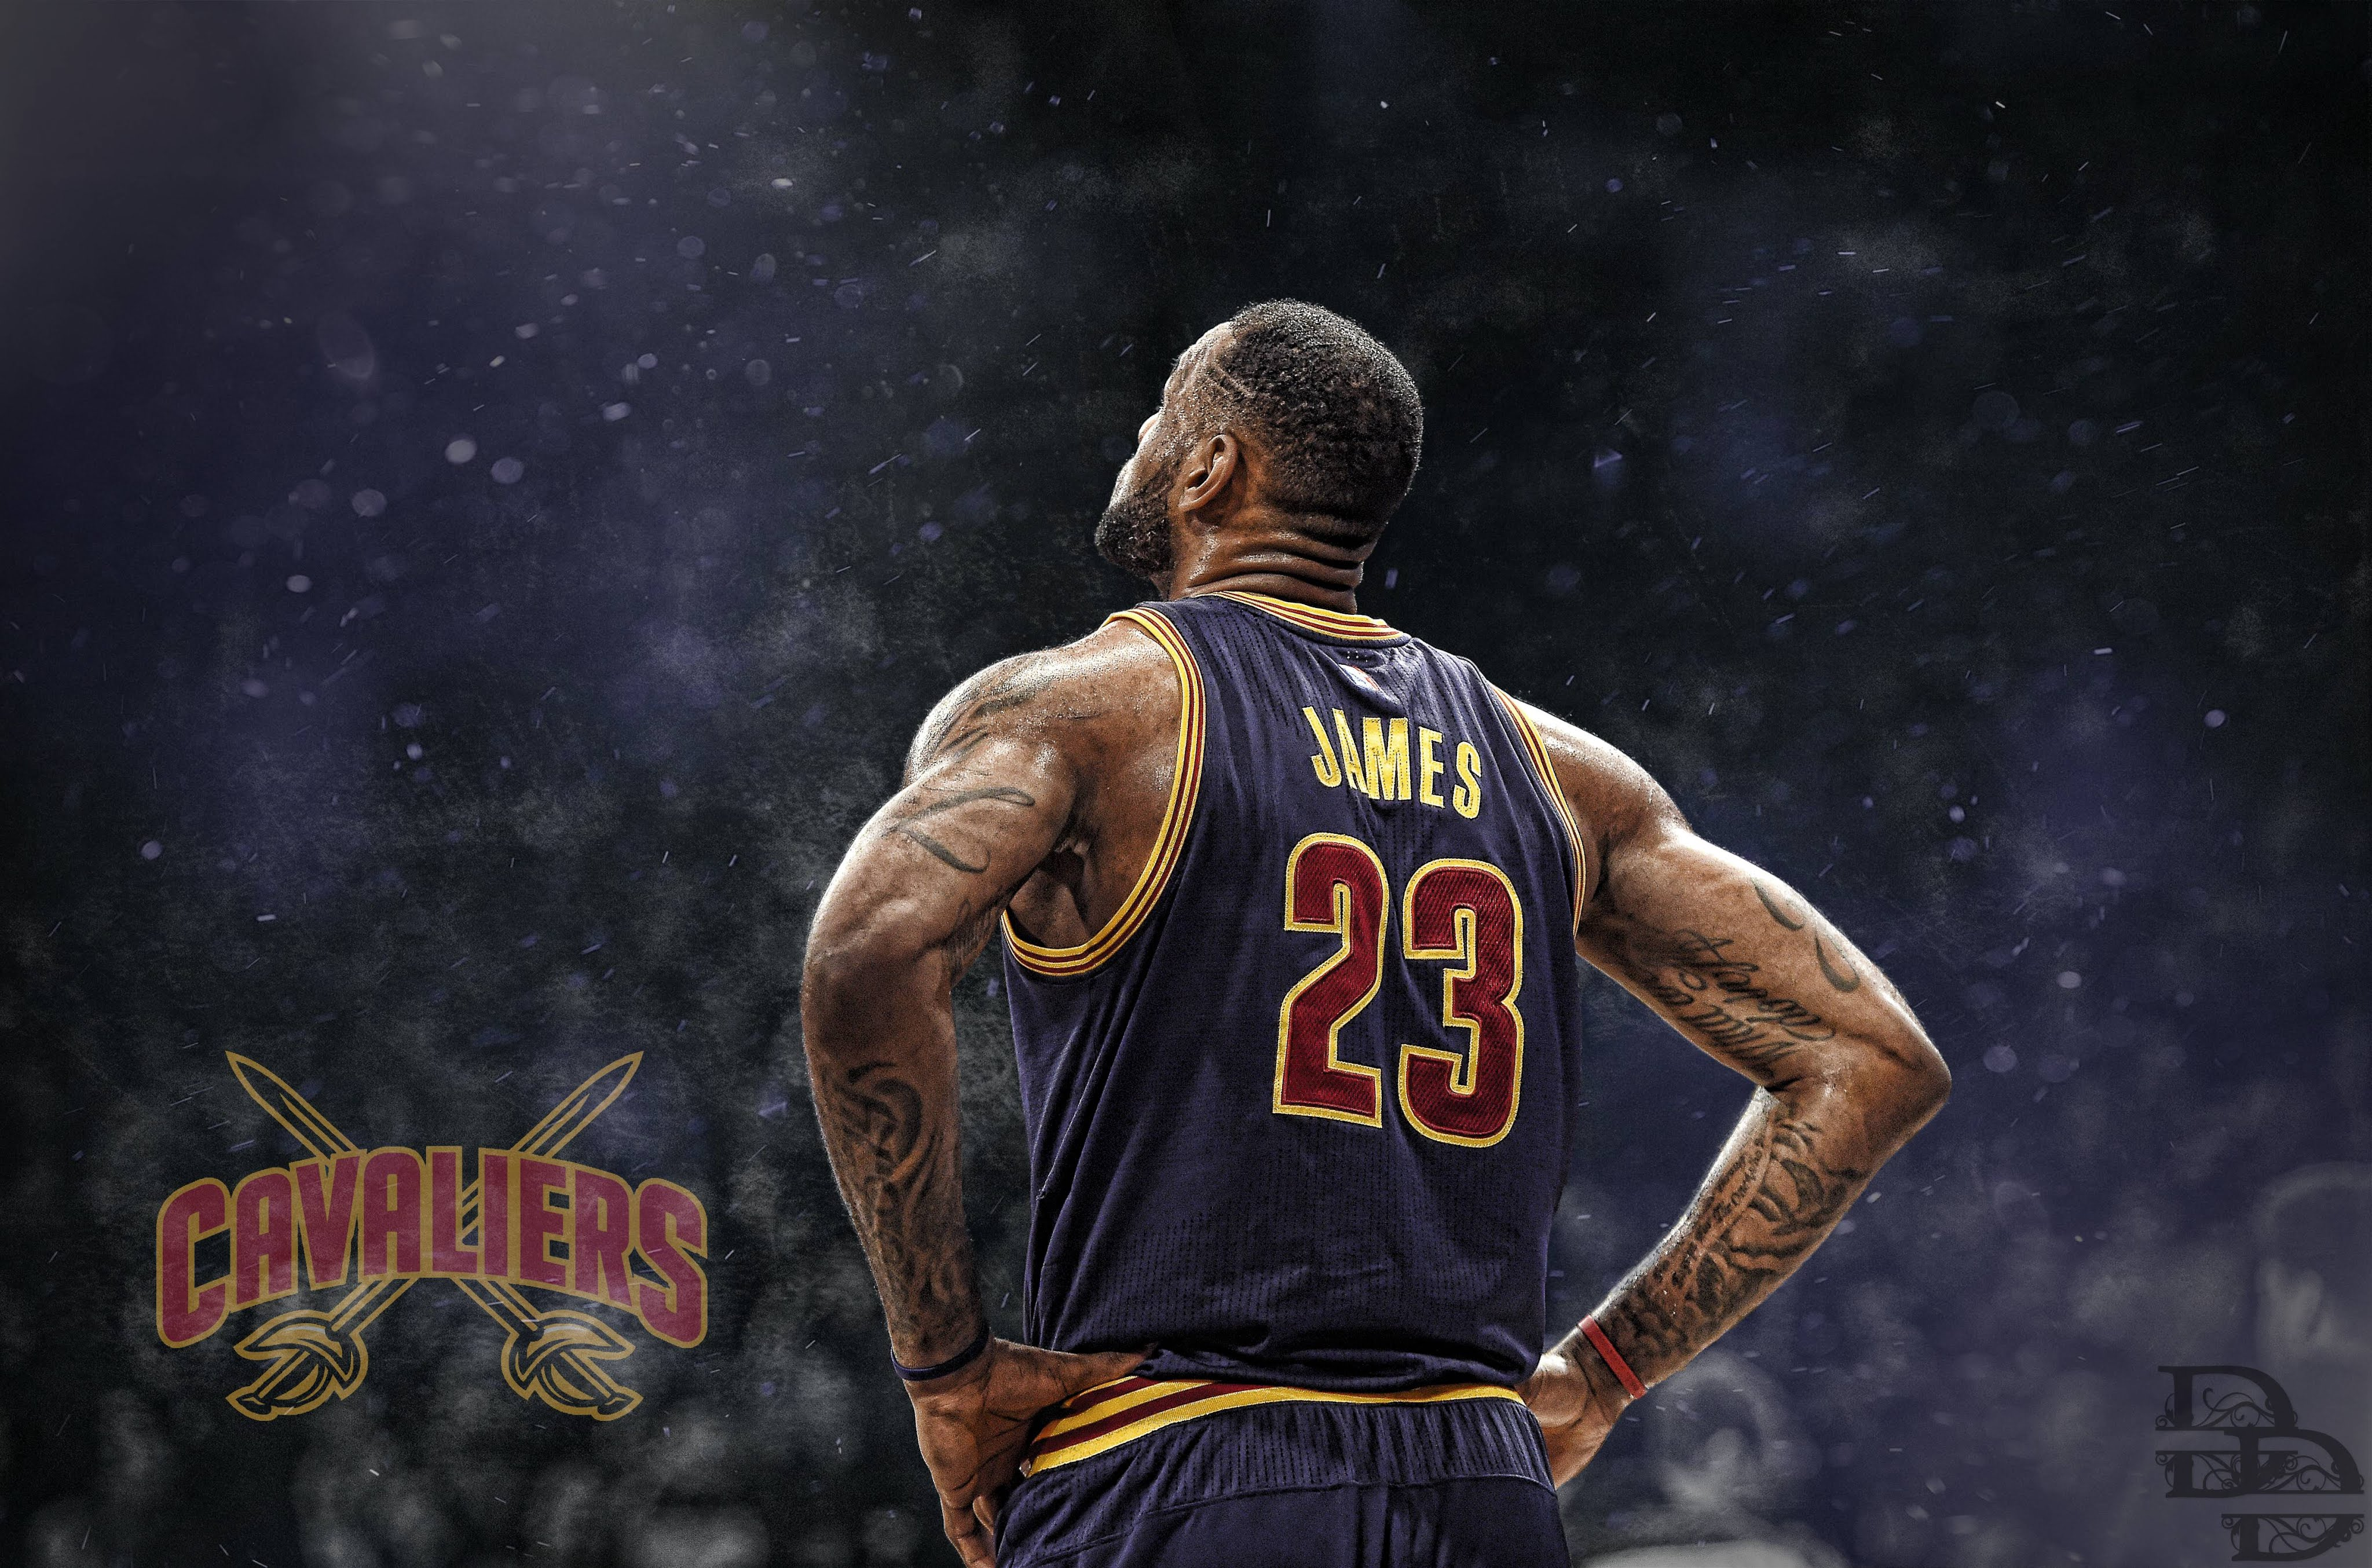 Cleveland Cavaliers LeBron James Wallpapers - Wallpaper Cave